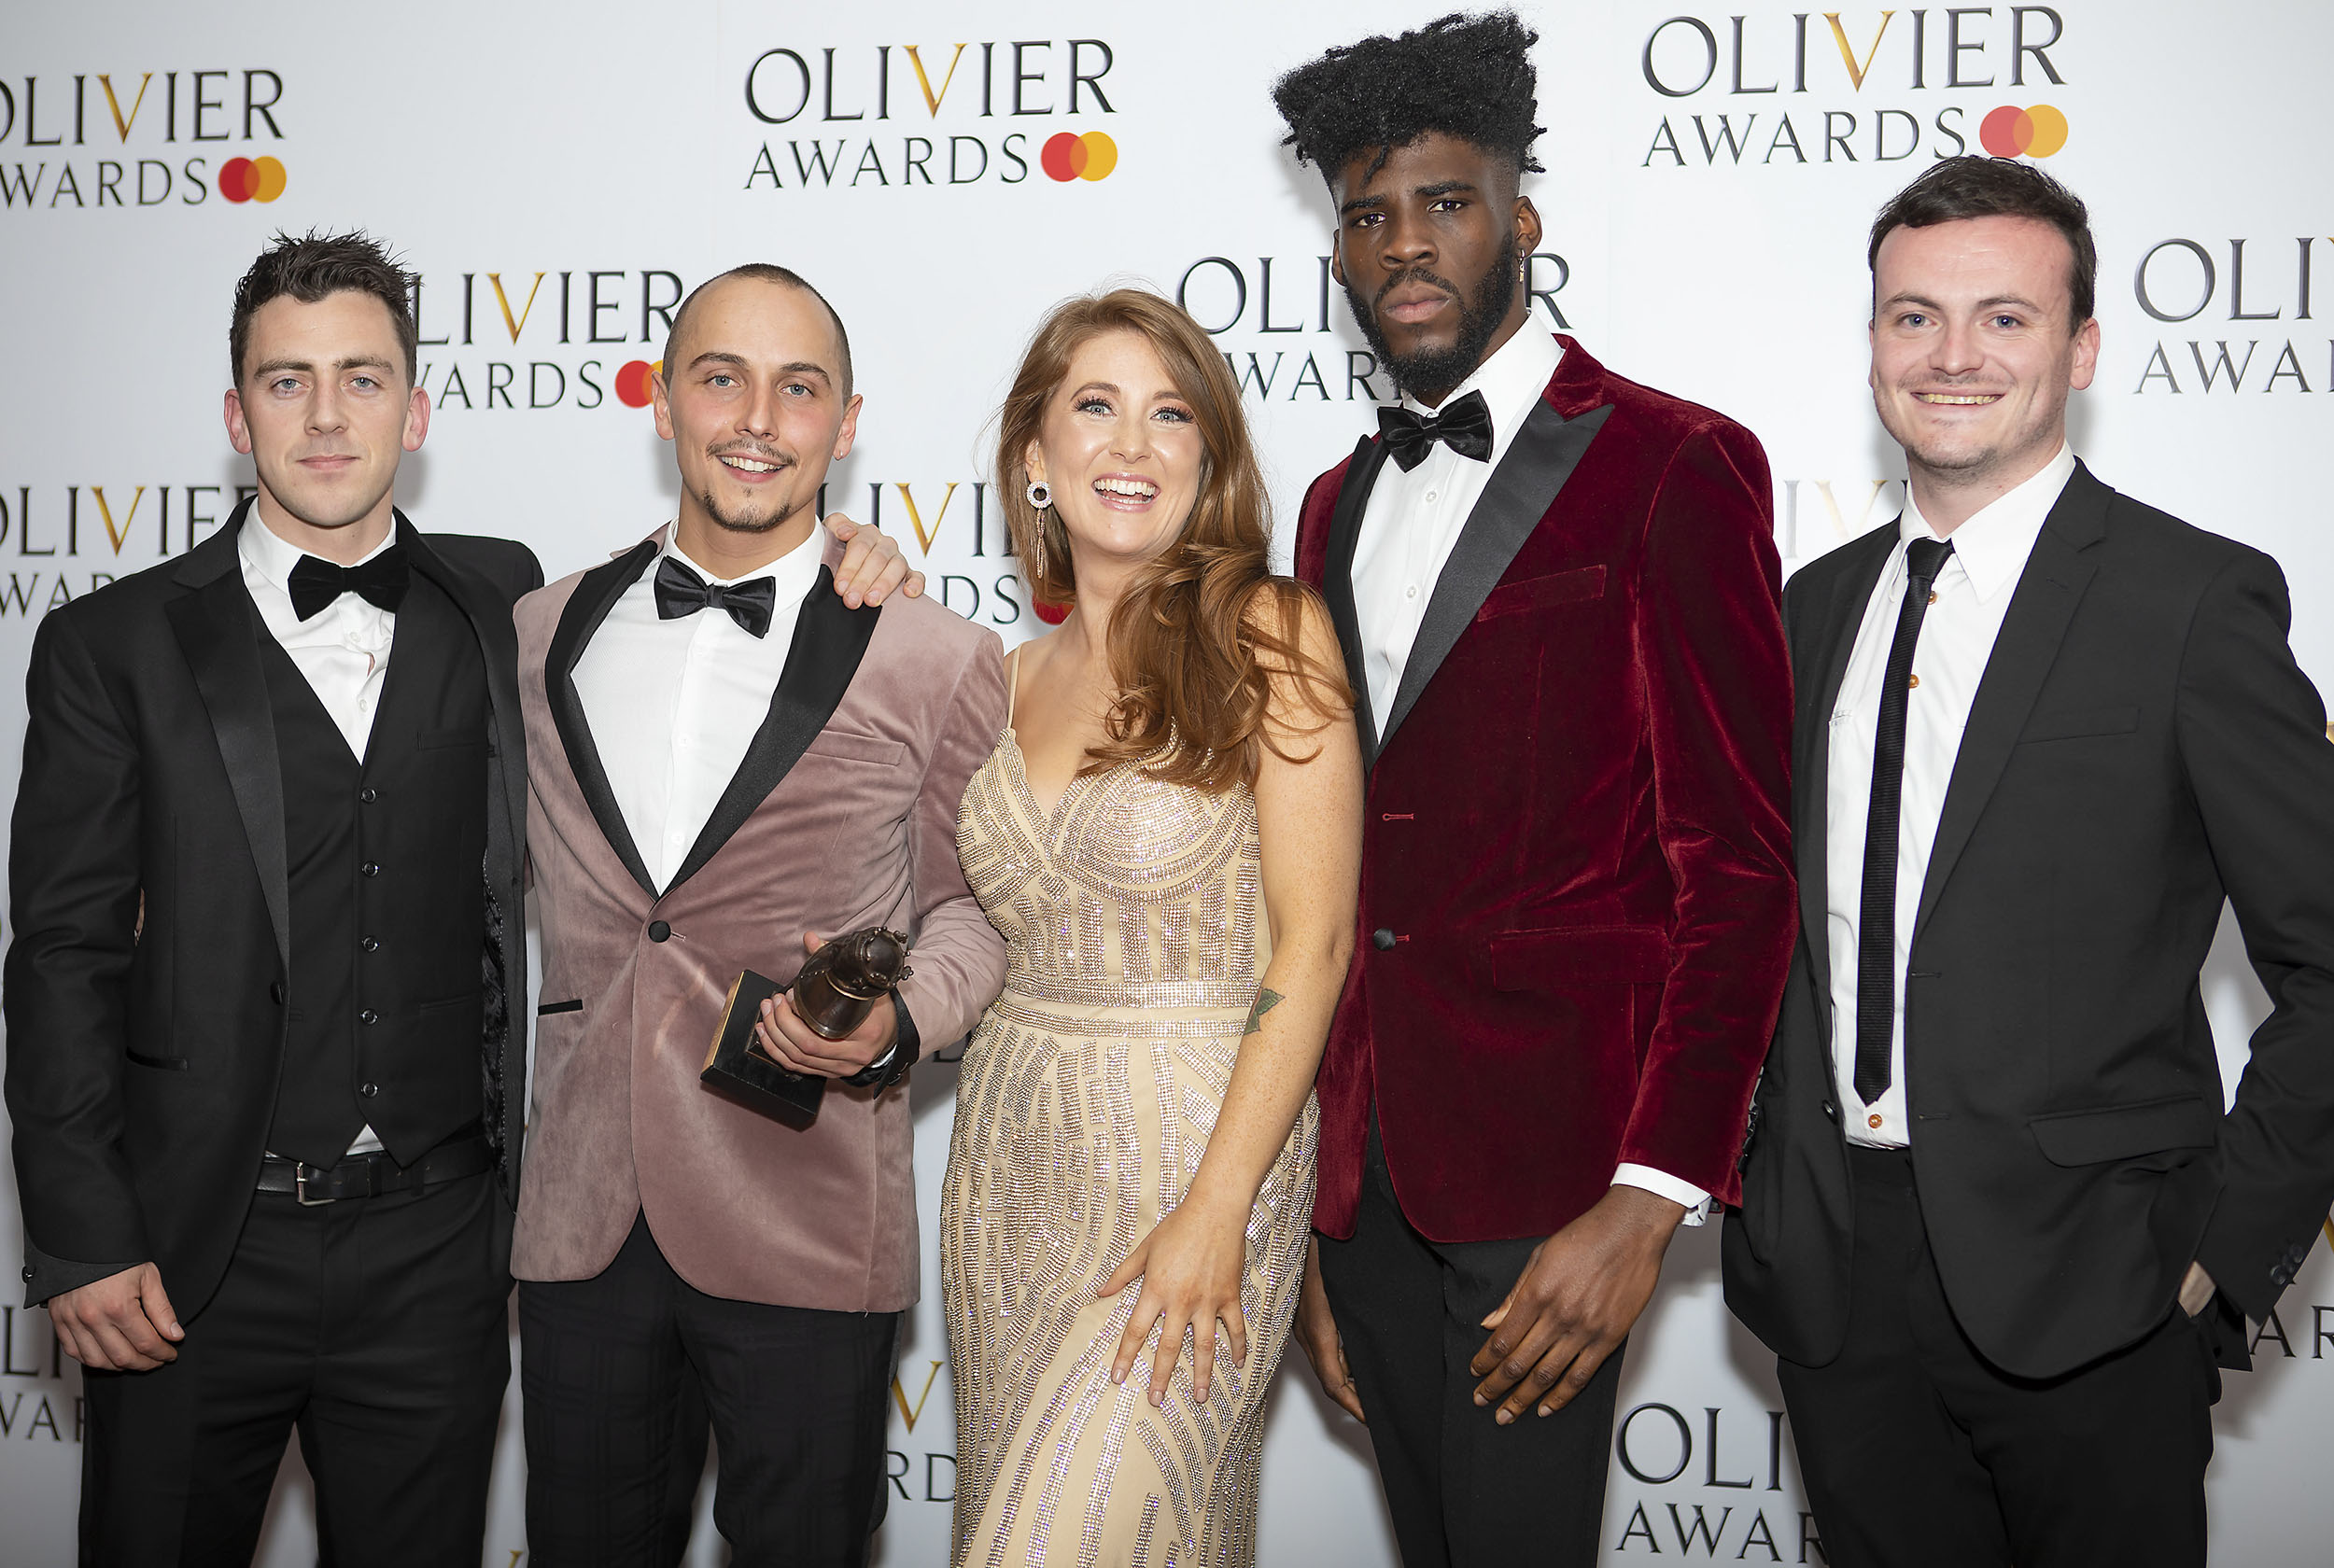 AUB alumni win Olivier Award for West End debut, Flesh and Bone